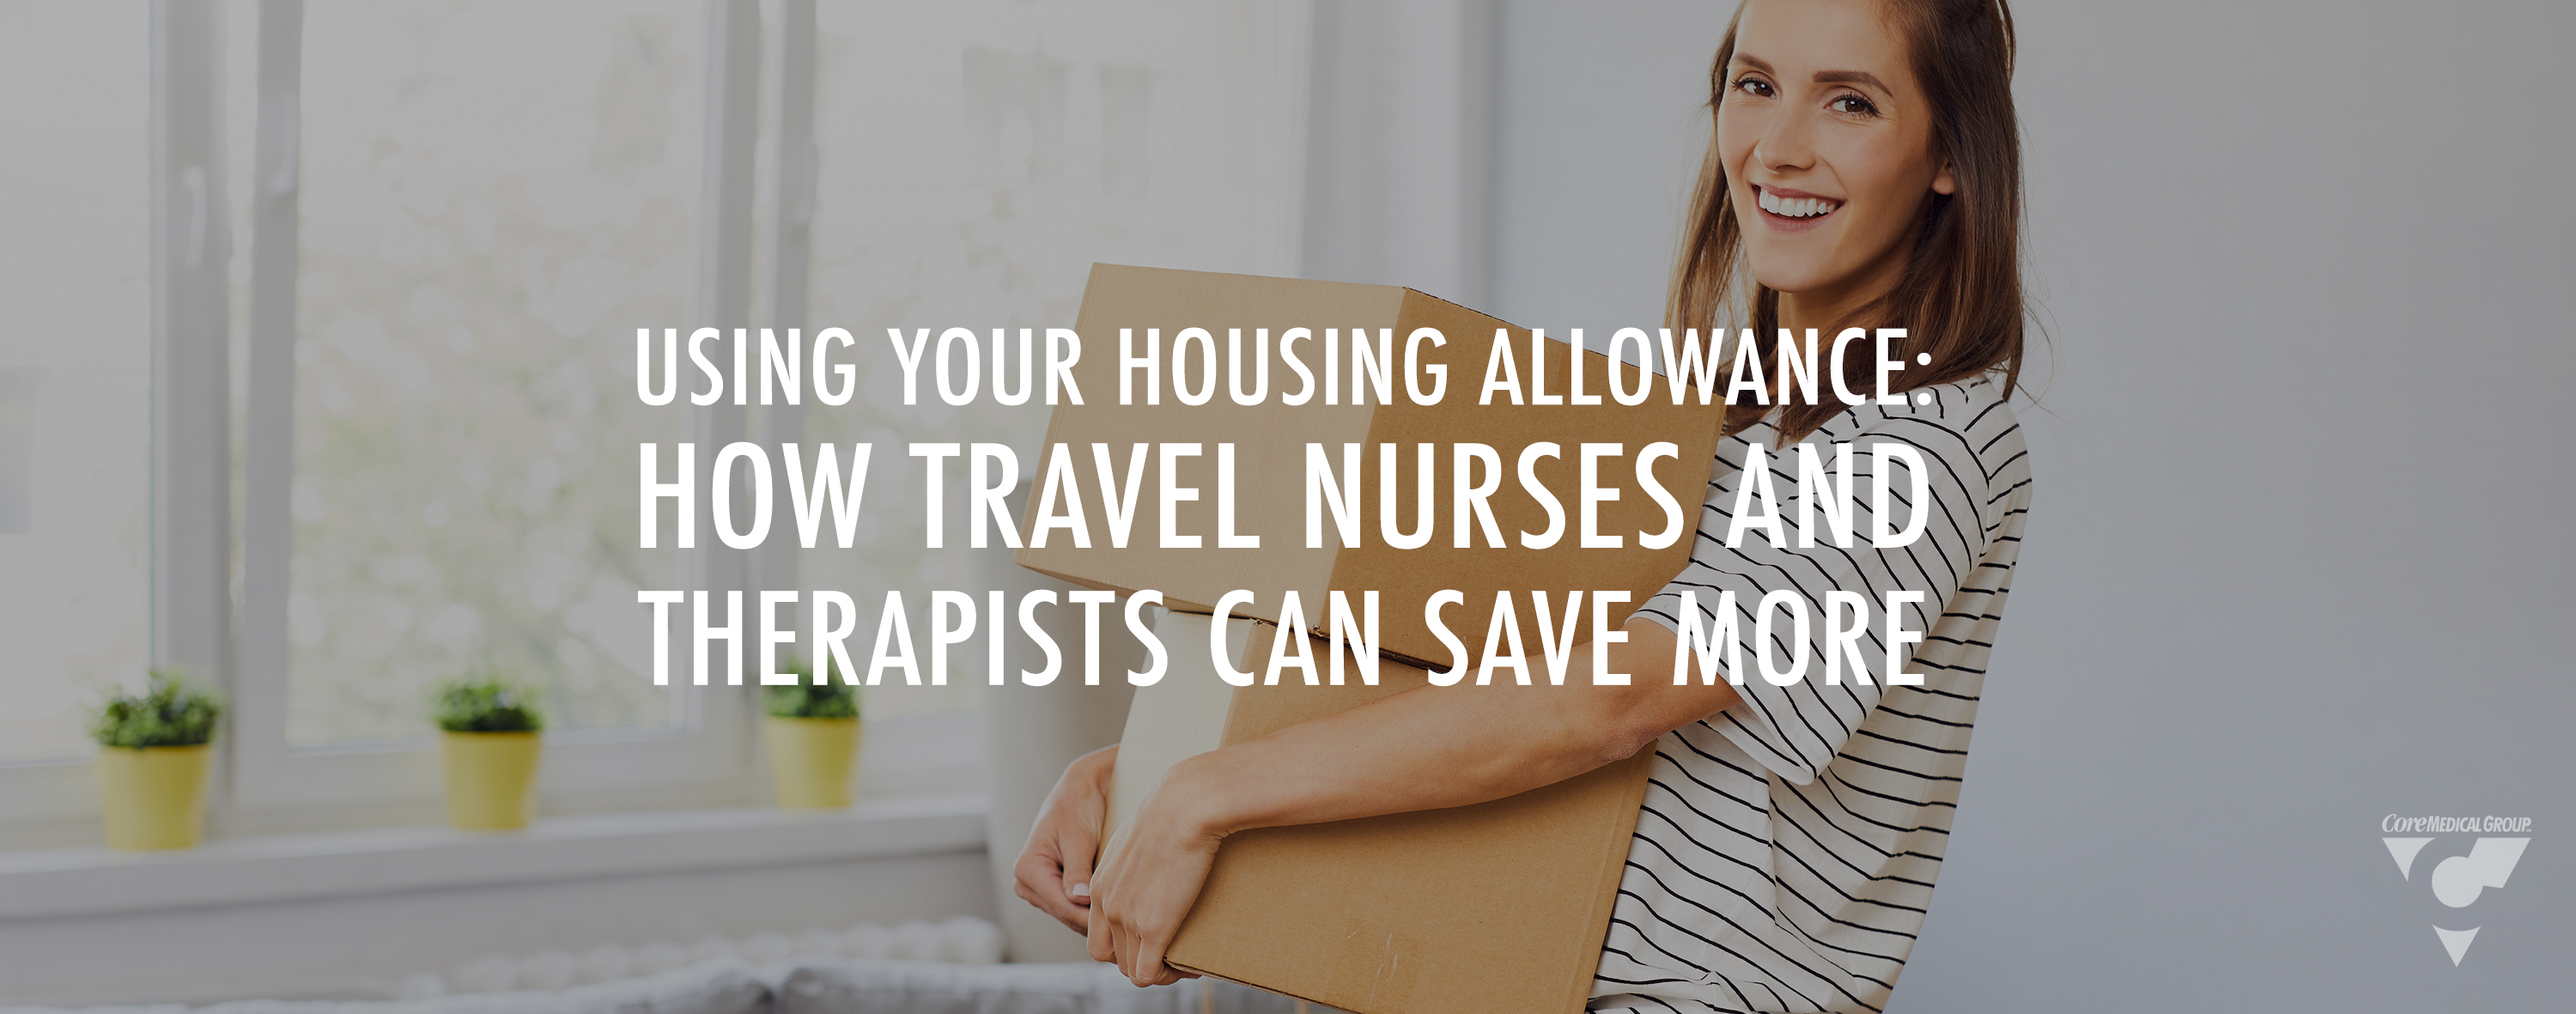 Travel Nurses and Therapists Save Money on Housing